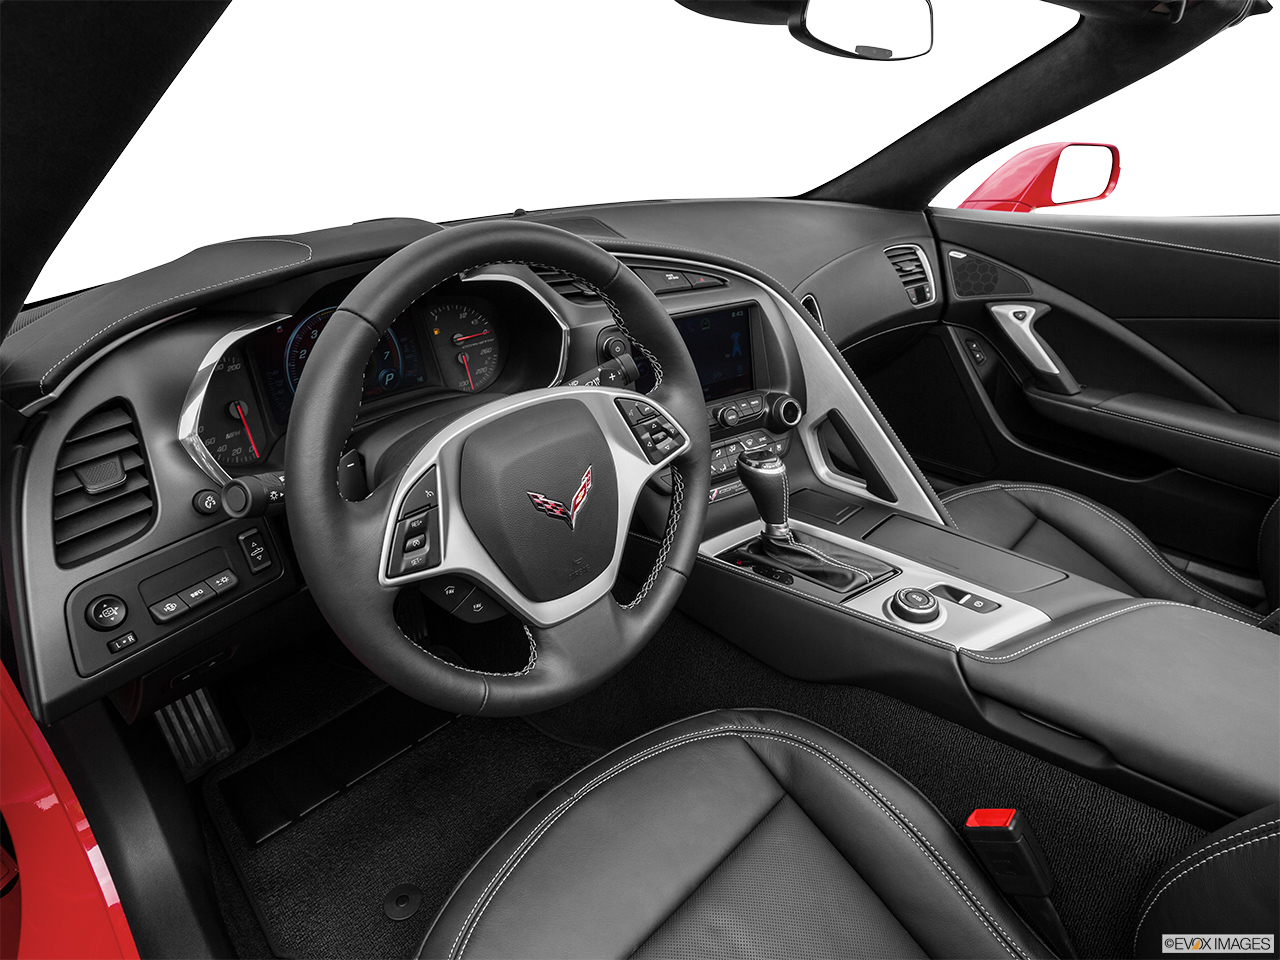 2015 Chevrolet Corvette 2 Door Stingray W/3LT Convertible   Interior Hero  (driveru0027s Side